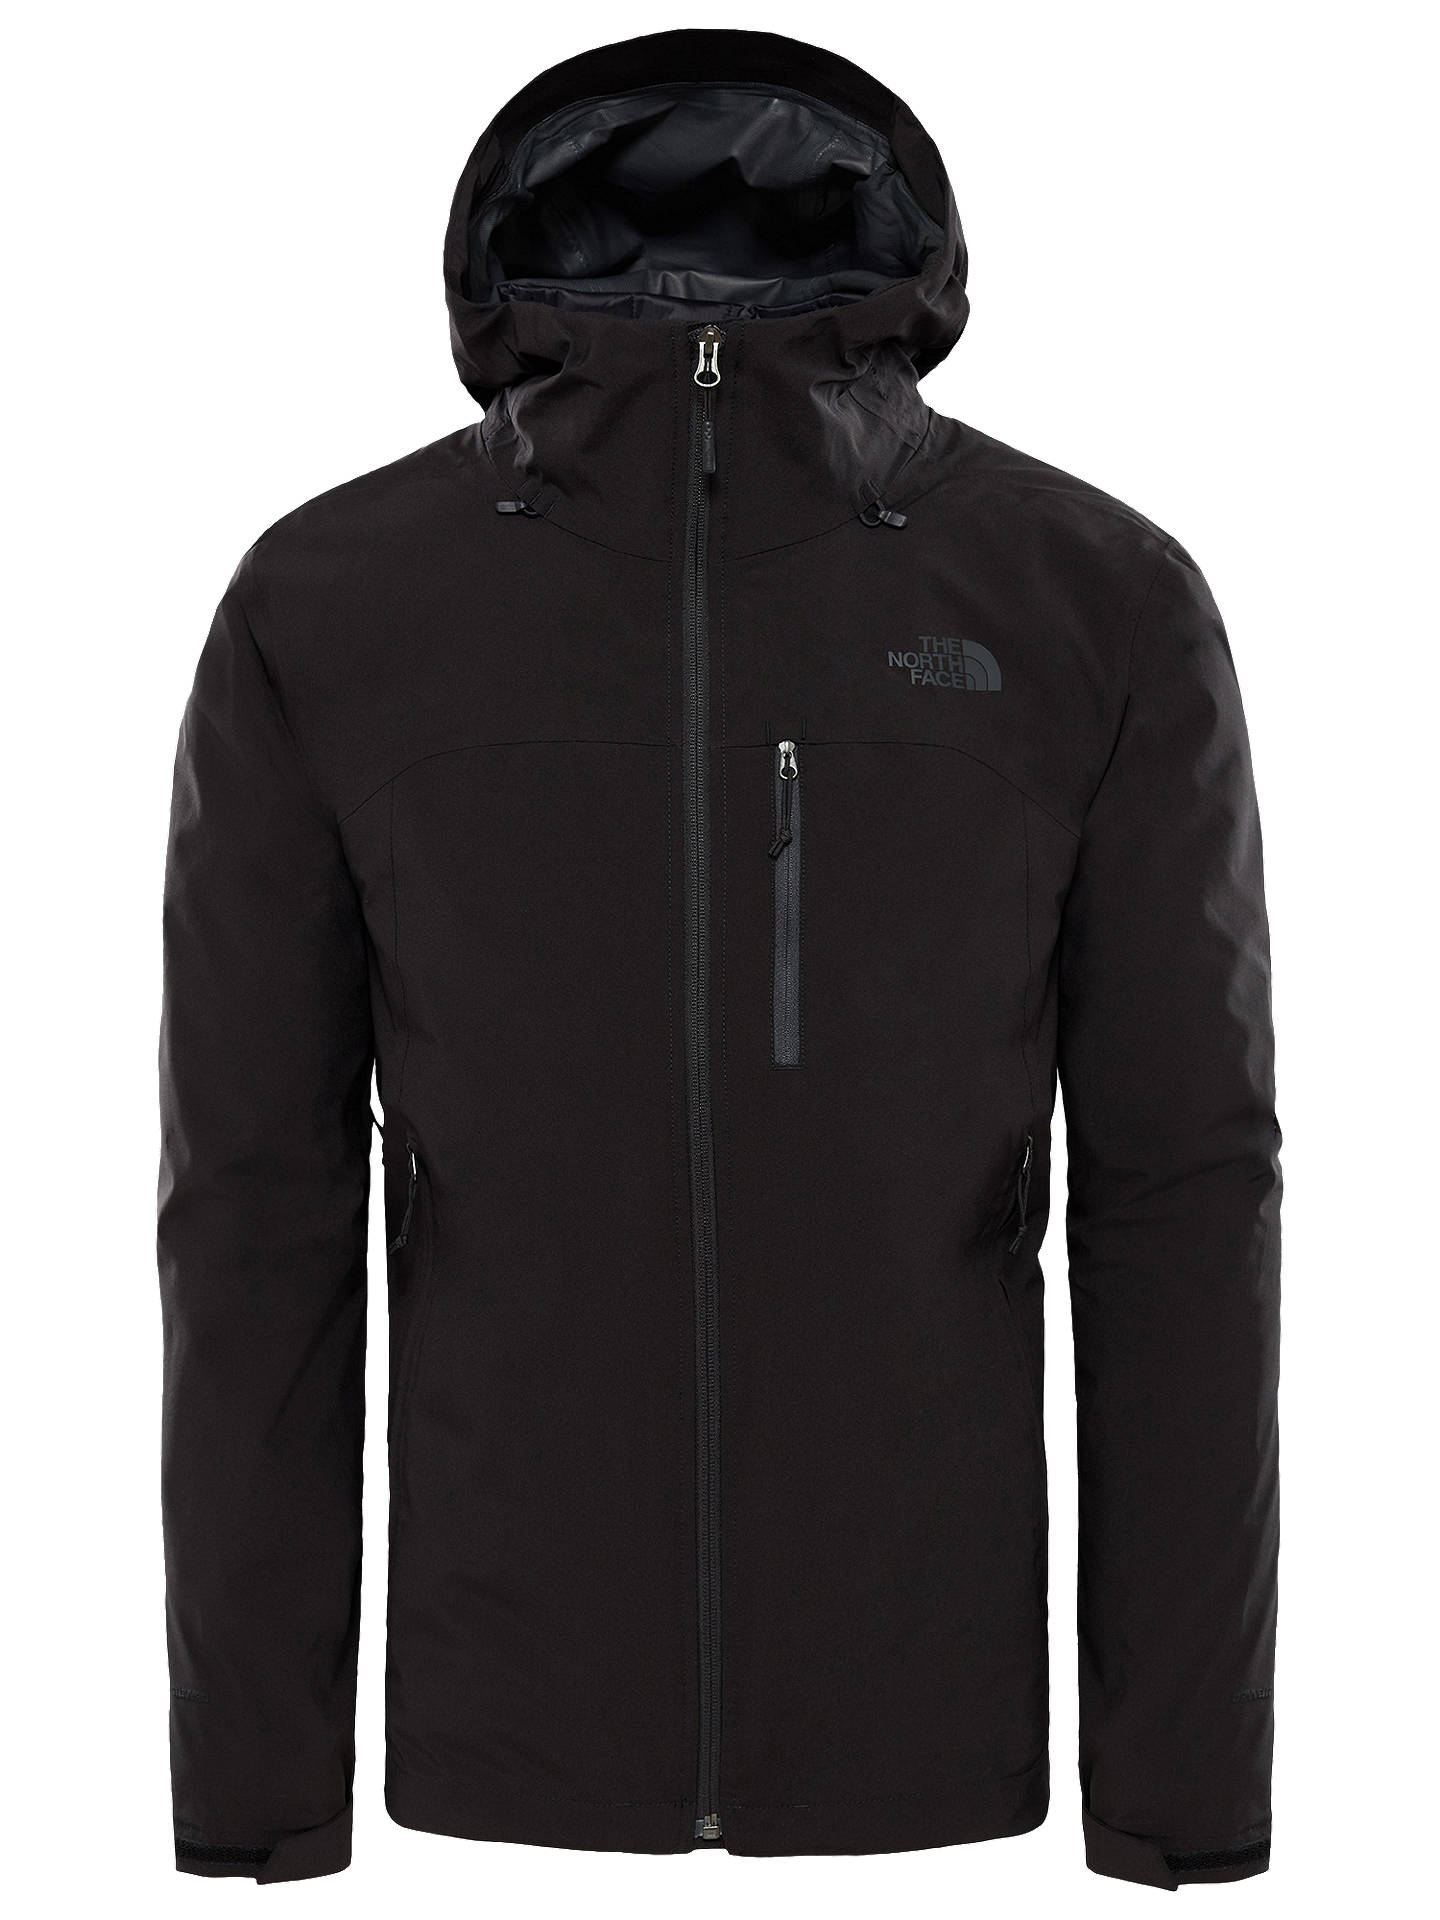 237d6802d The North Face Thermoball Triclimate Men's Waterproof Jacket, Black ...